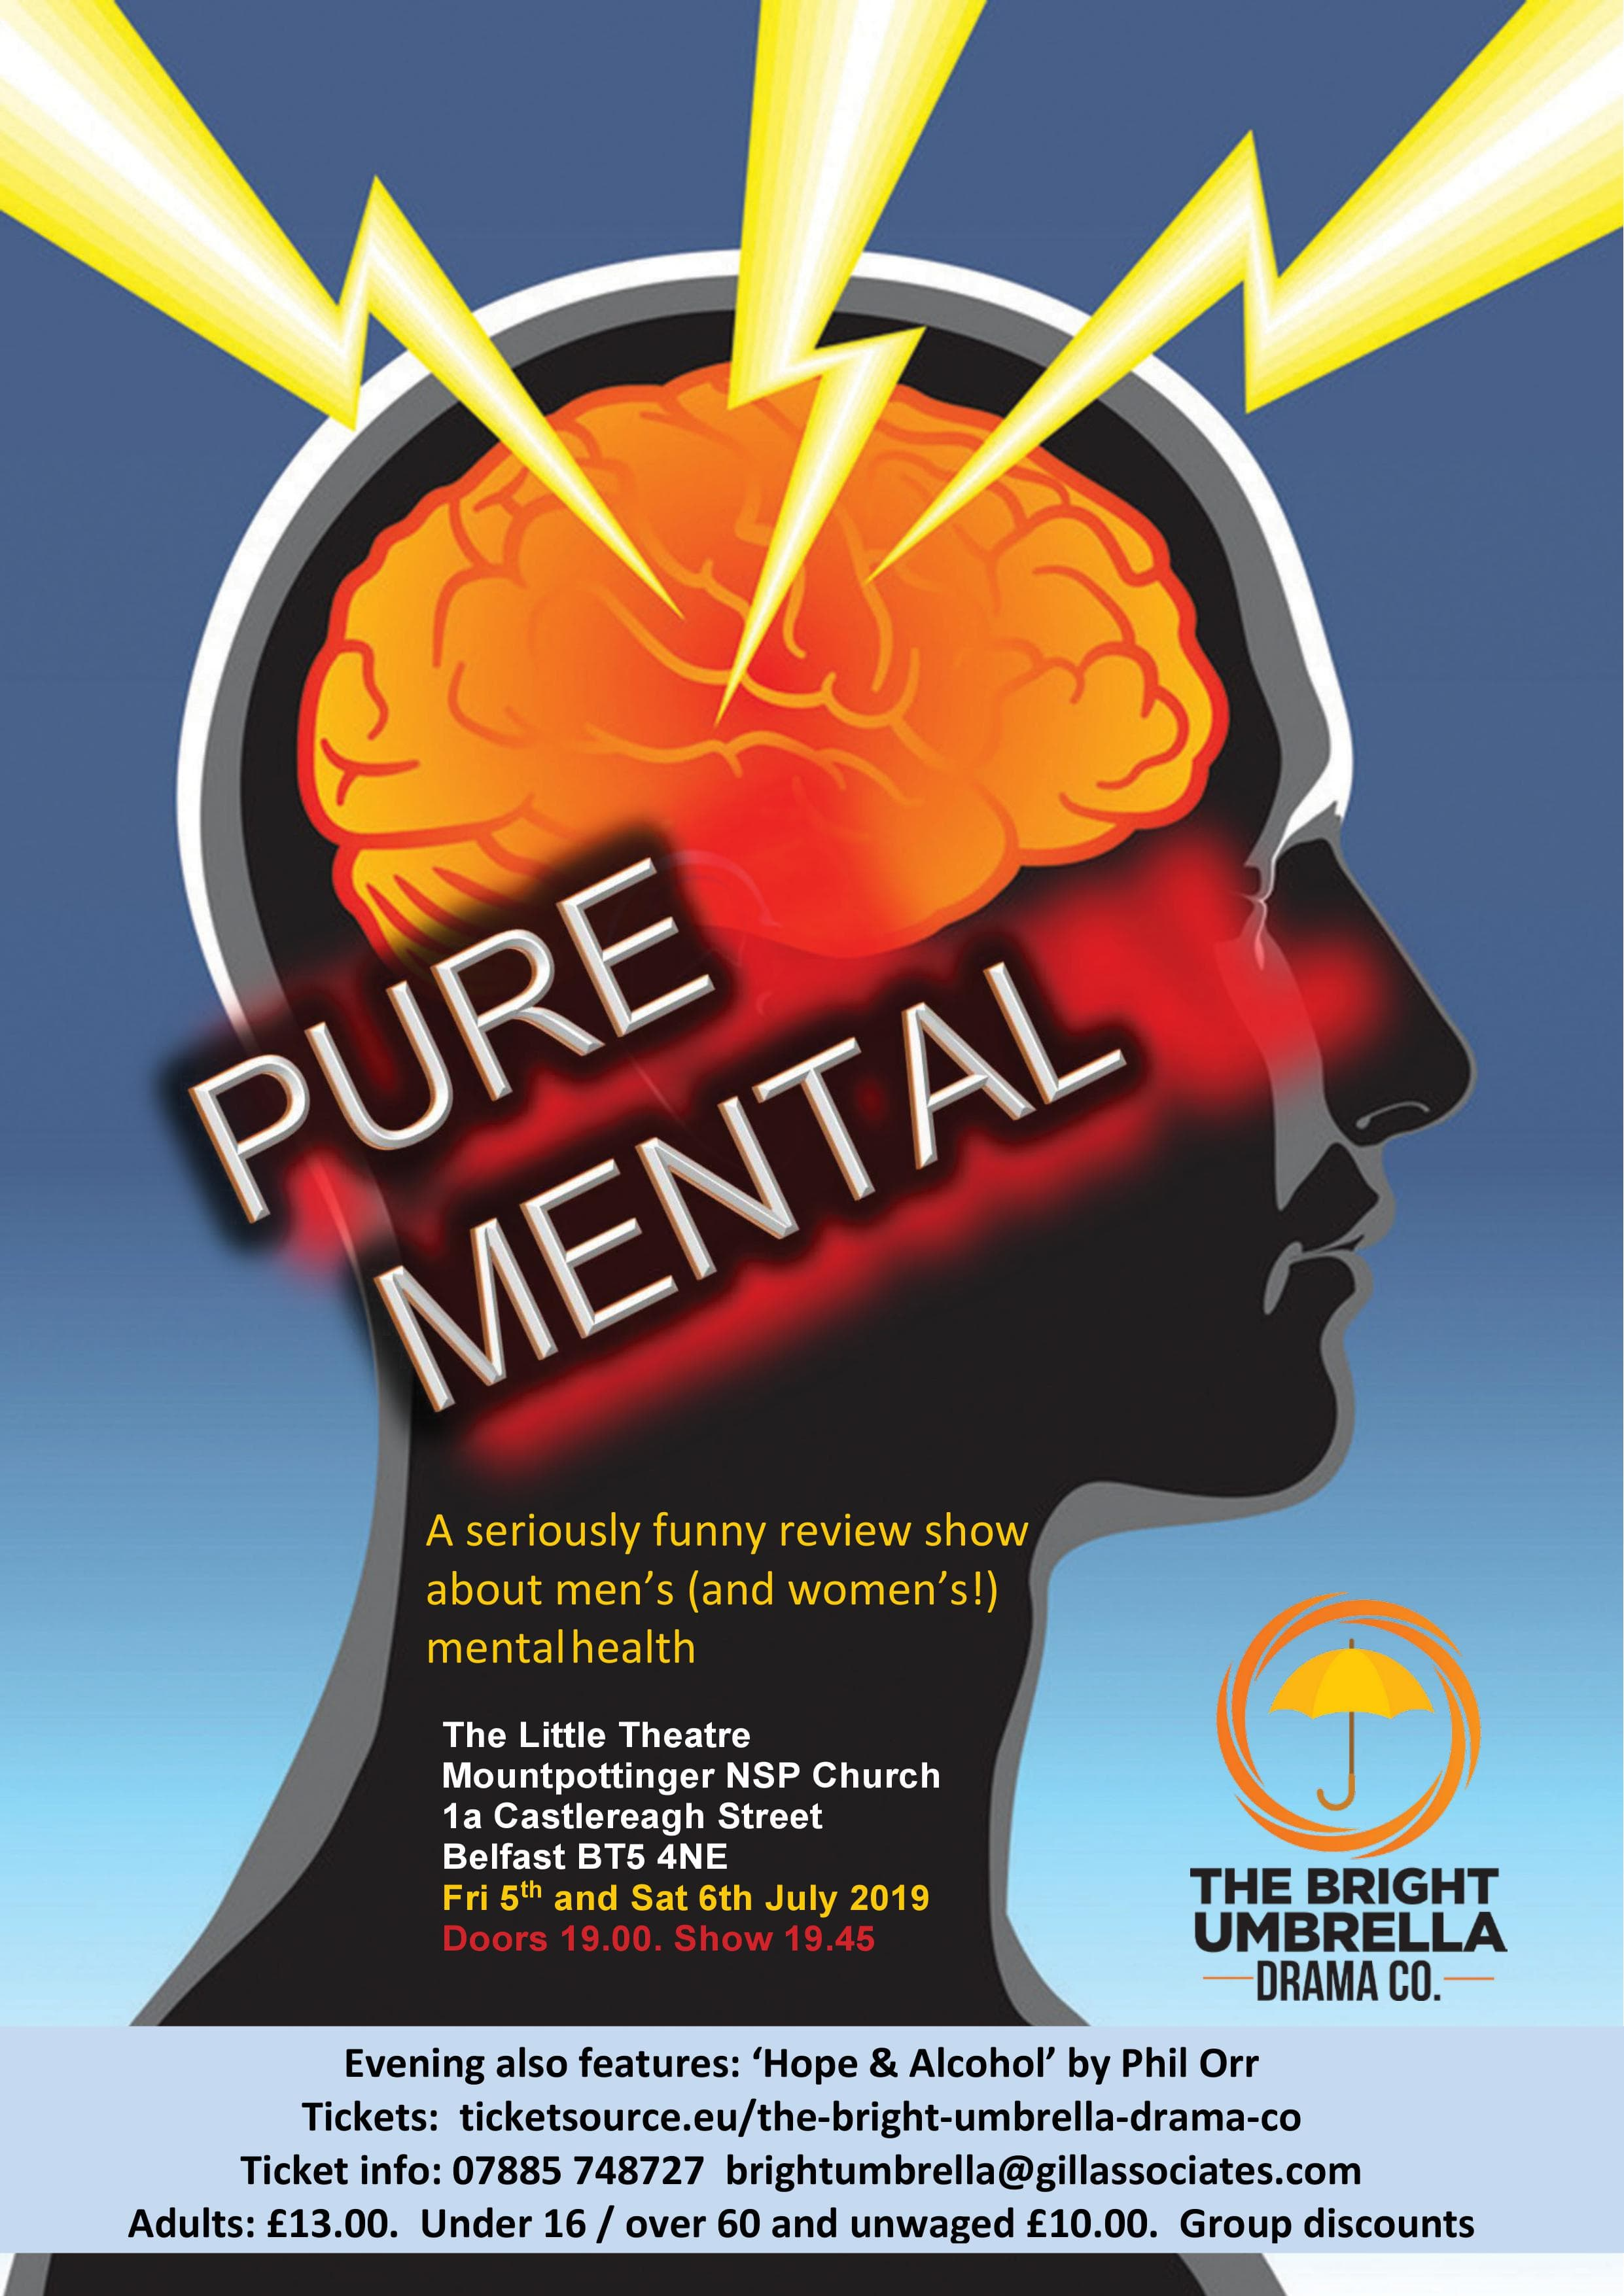 'Hope & Alcohol' and 'Pure Mental' banner image